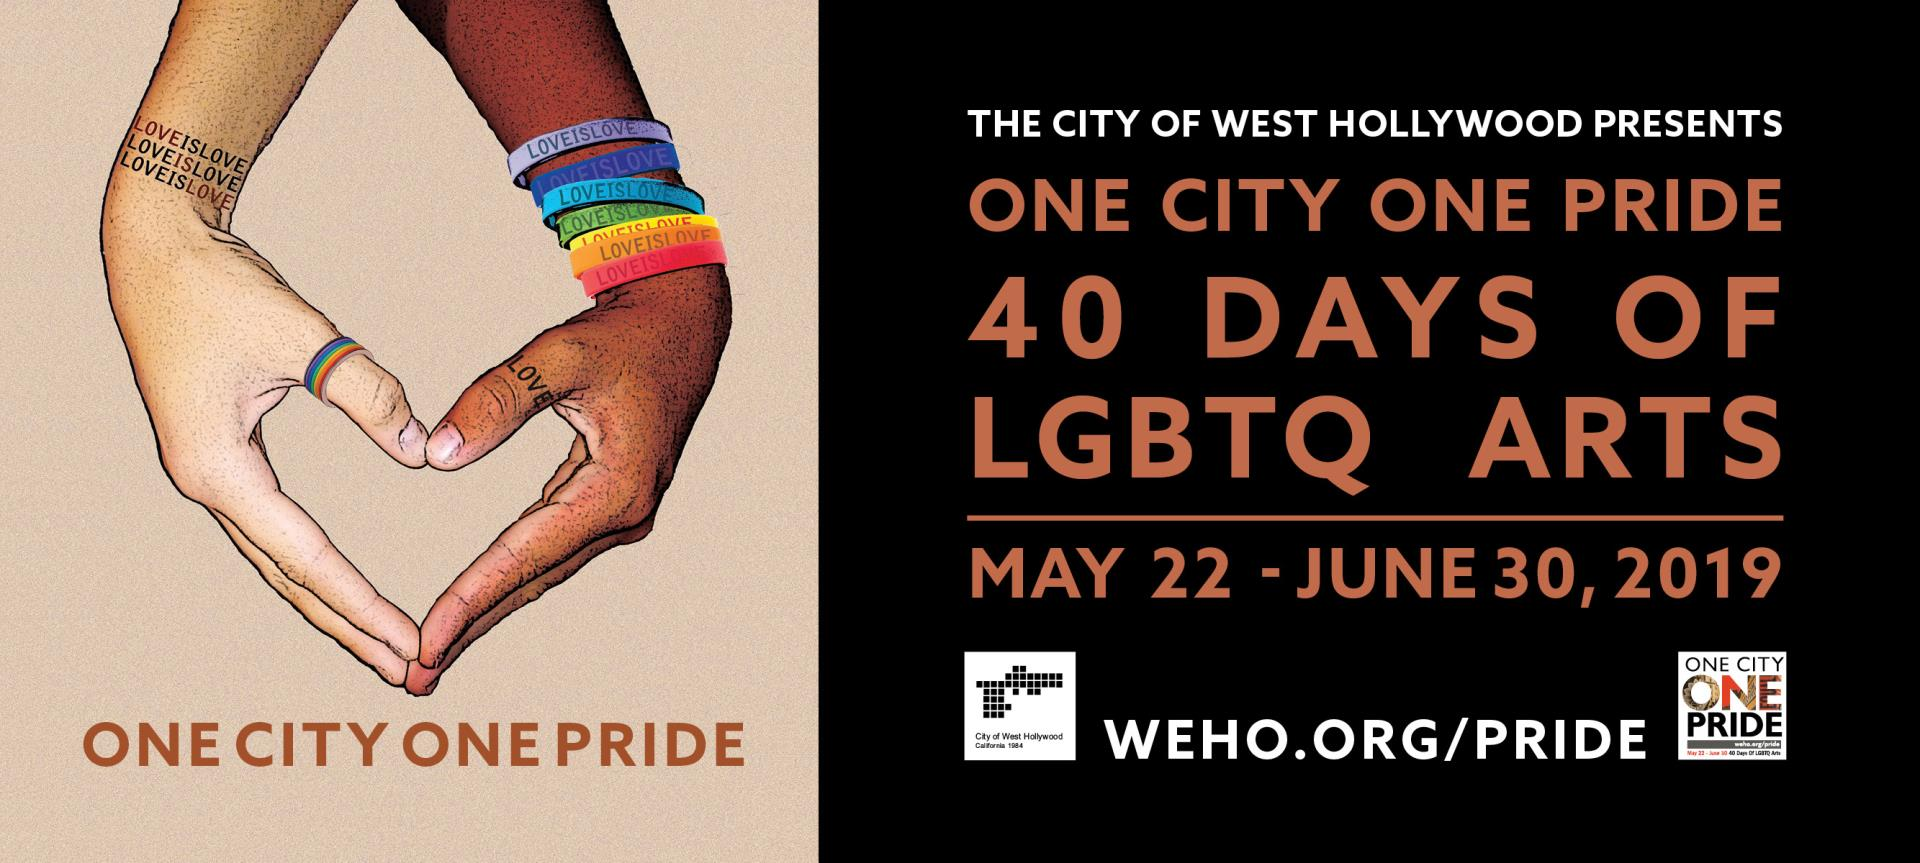 City's 'One City One Pride' Festival is Packed with 40 Days and Nights of Arts and Cultural Events from May 22 through June 30